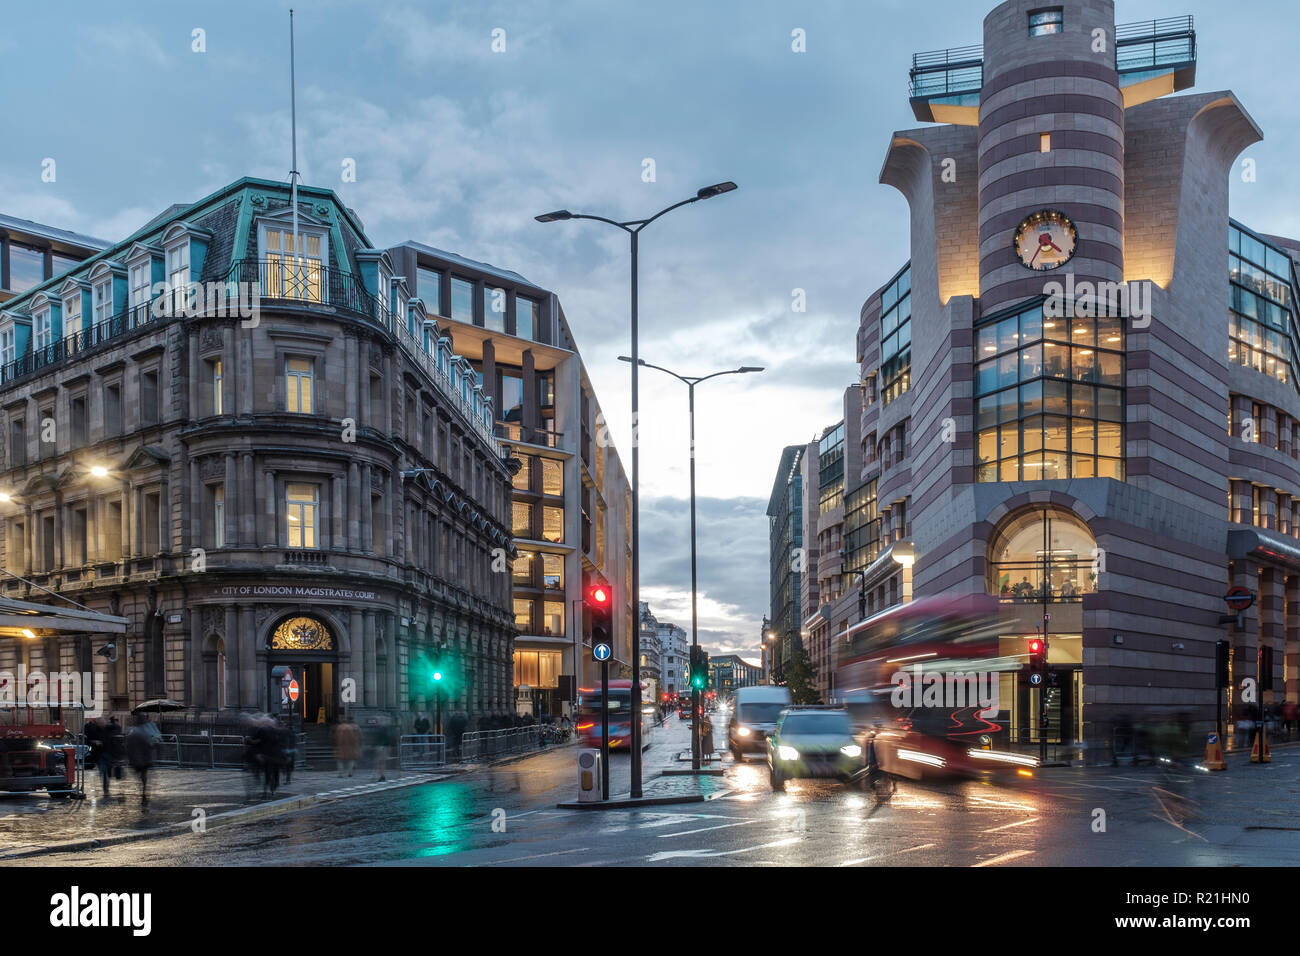 England,London- traffic on Bank Station Junction, City of London Magistrate Court to the left, Queen Victoria Street and Poultry to the right - Stock Image